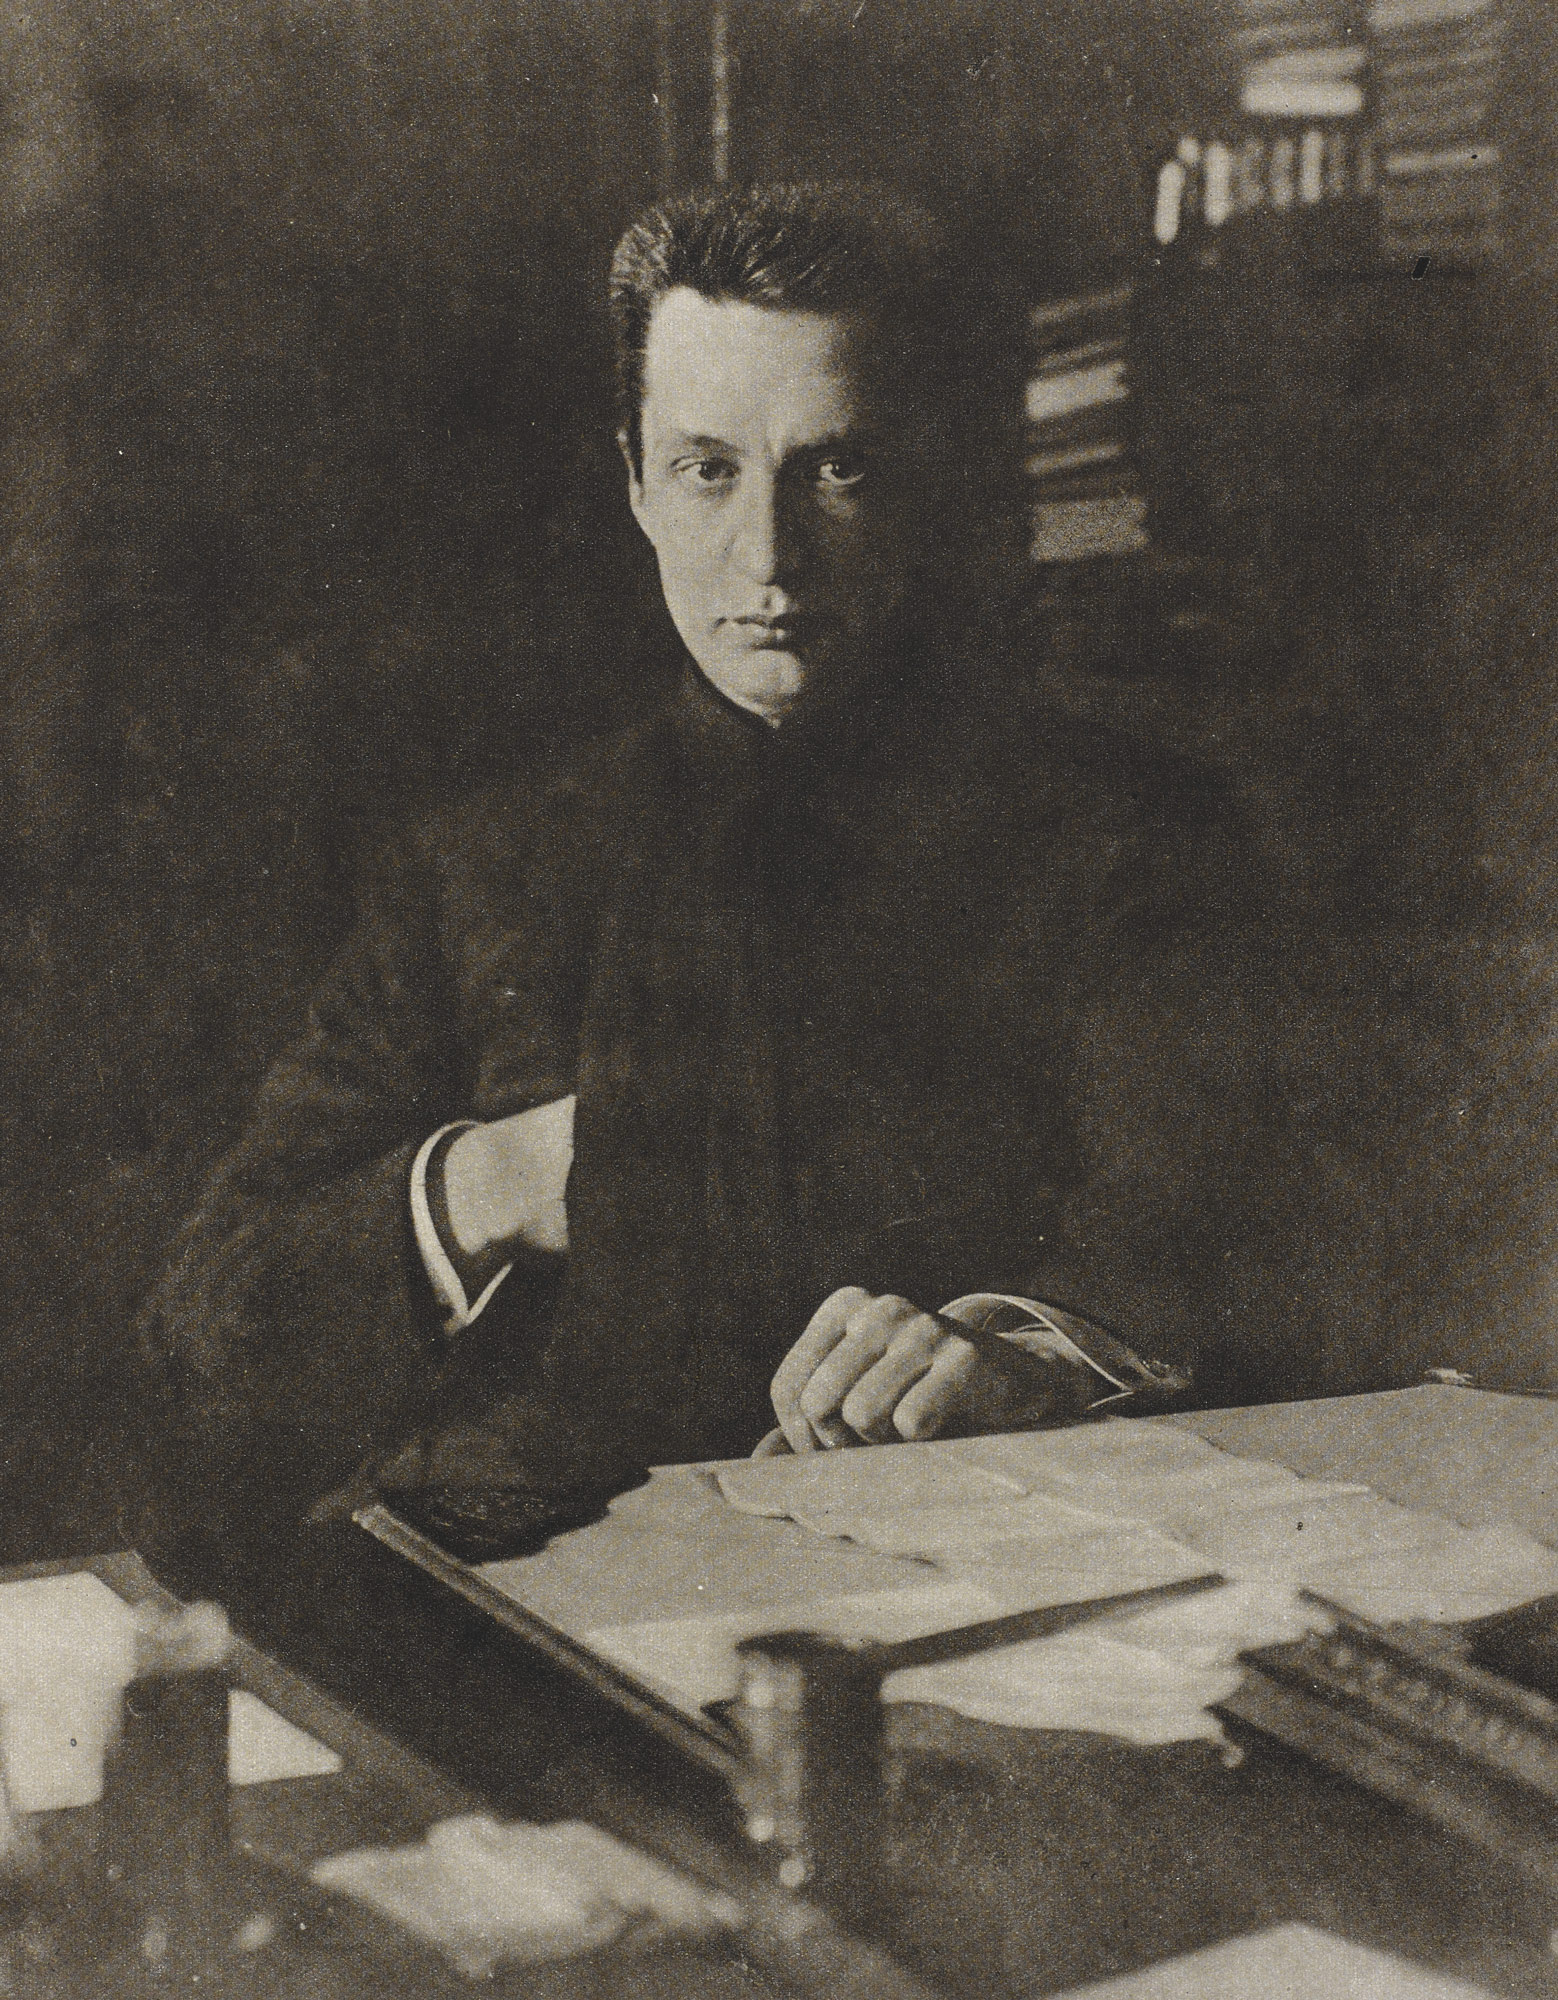 Alexander Kerensky - The British Library